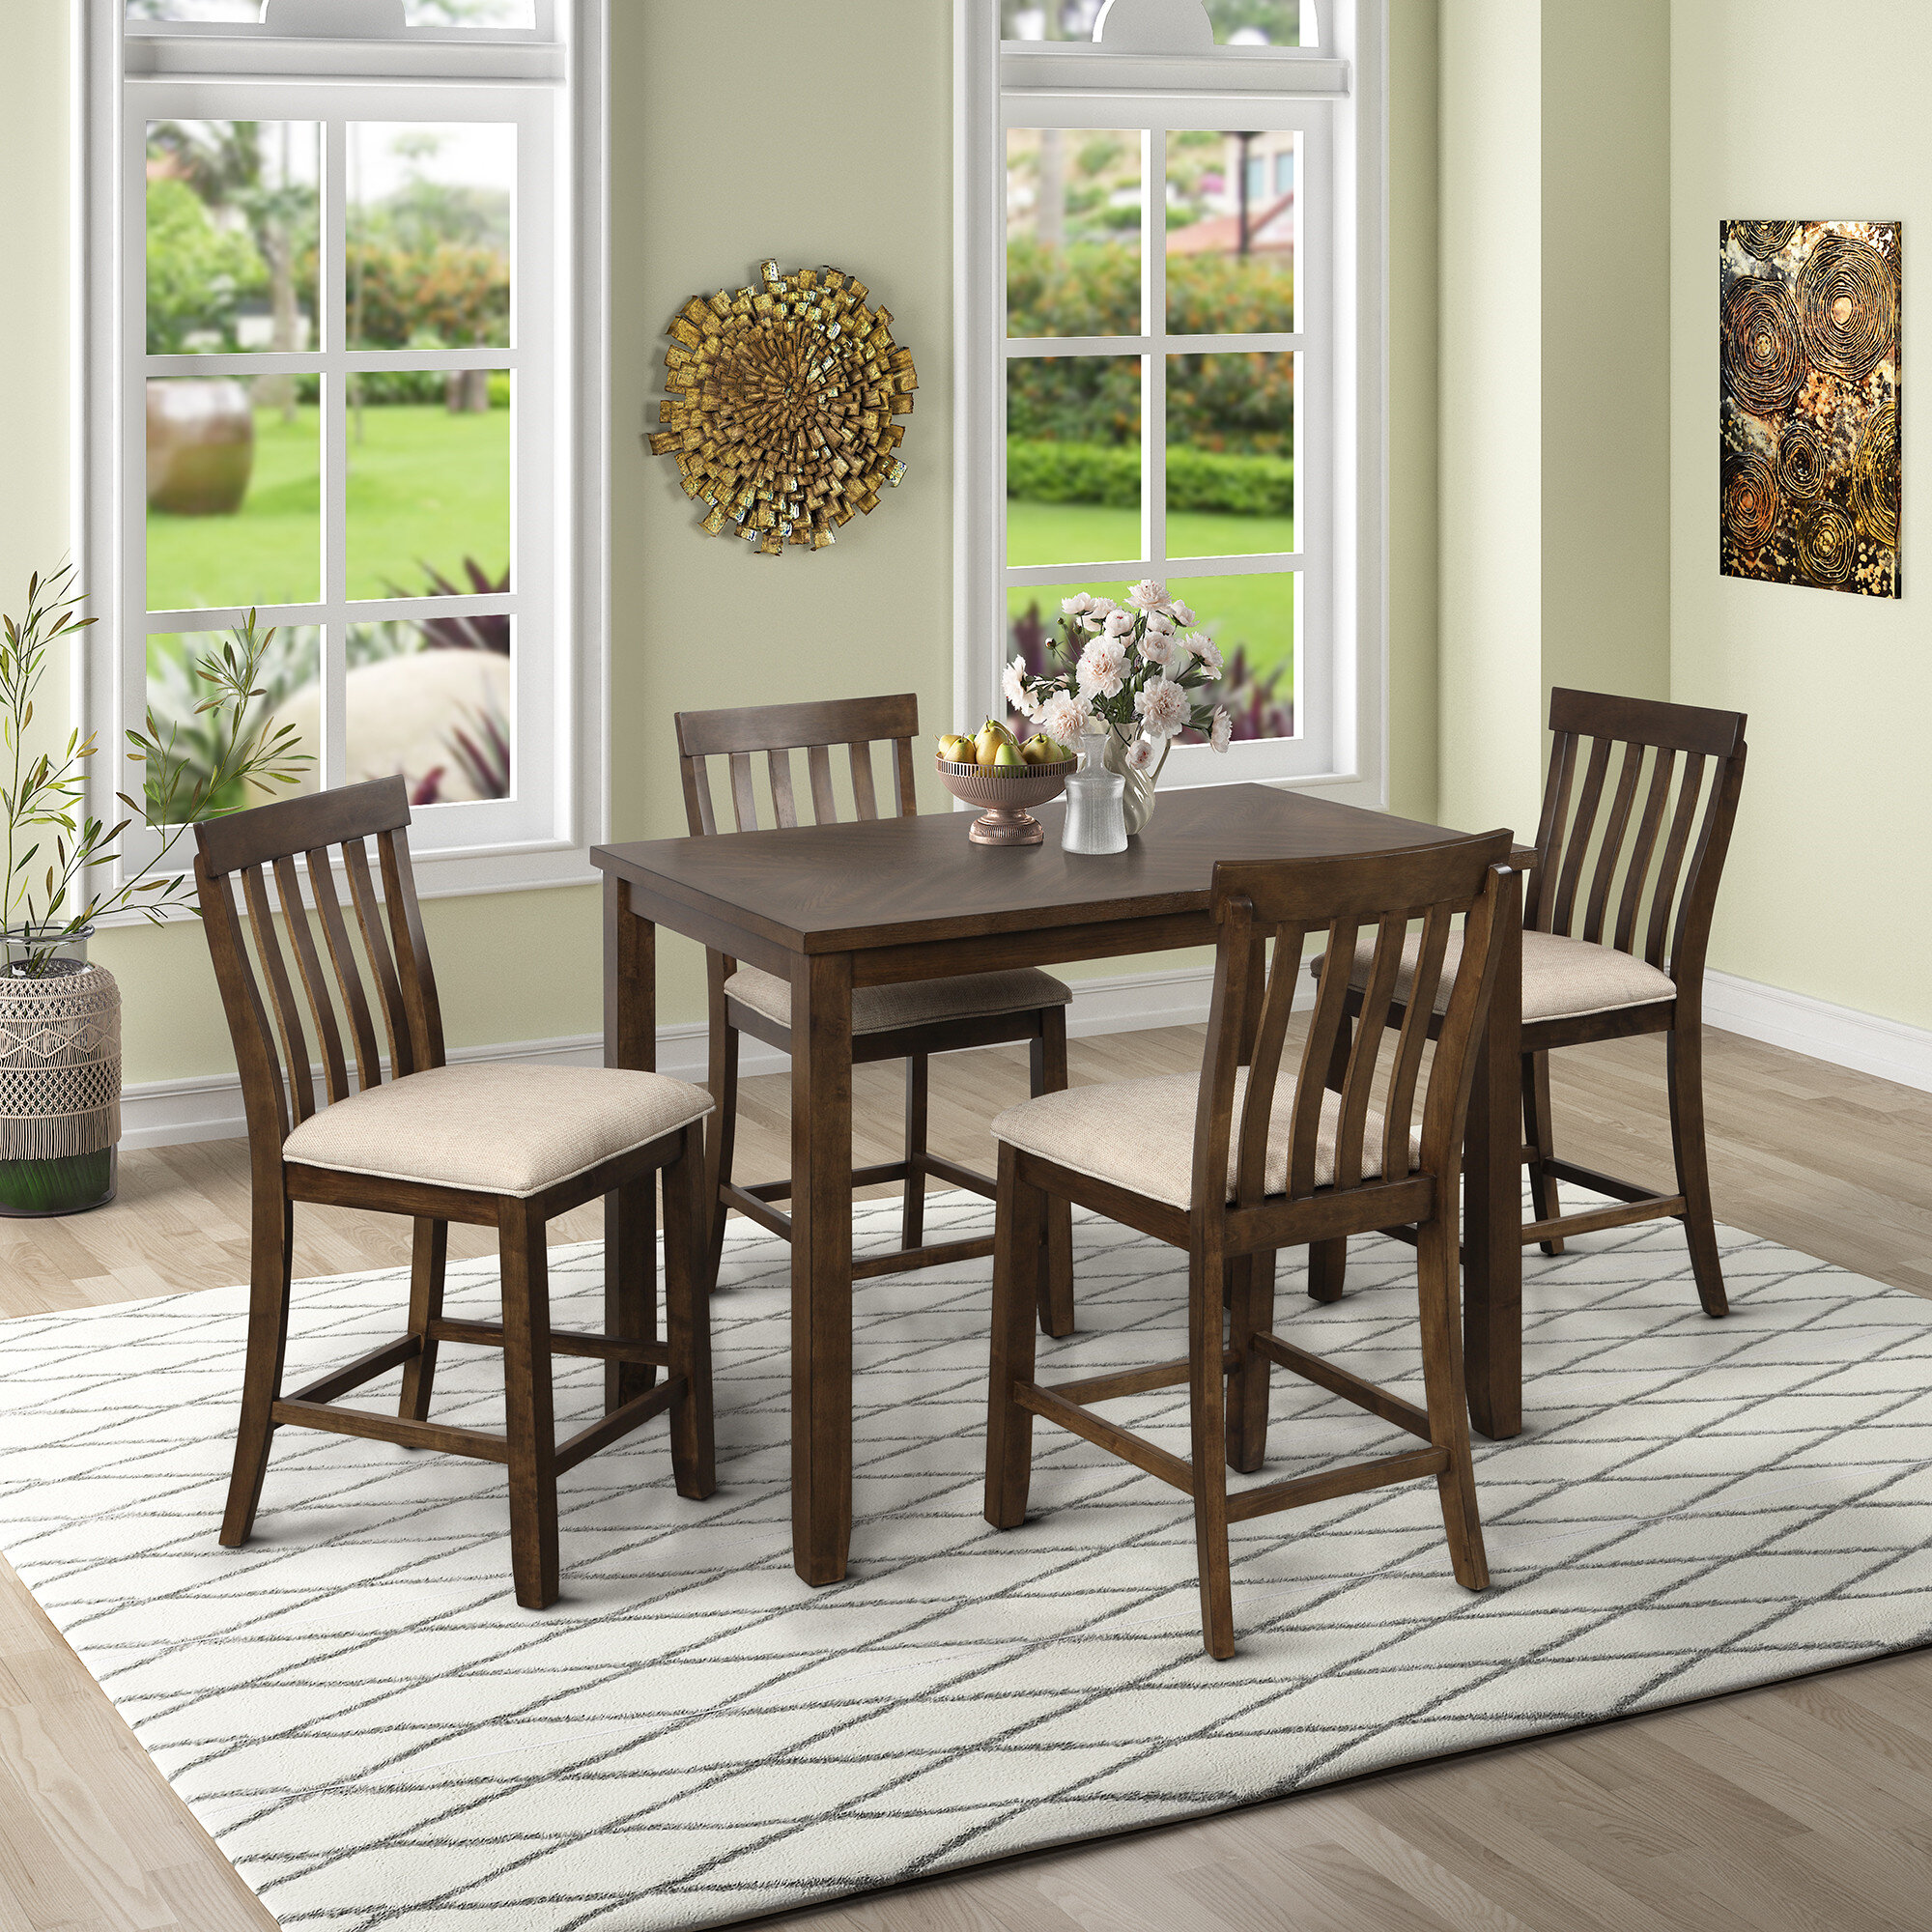 Yellow Bar Counter Height Dining Sets You Ll Love In 2021 Wayfair